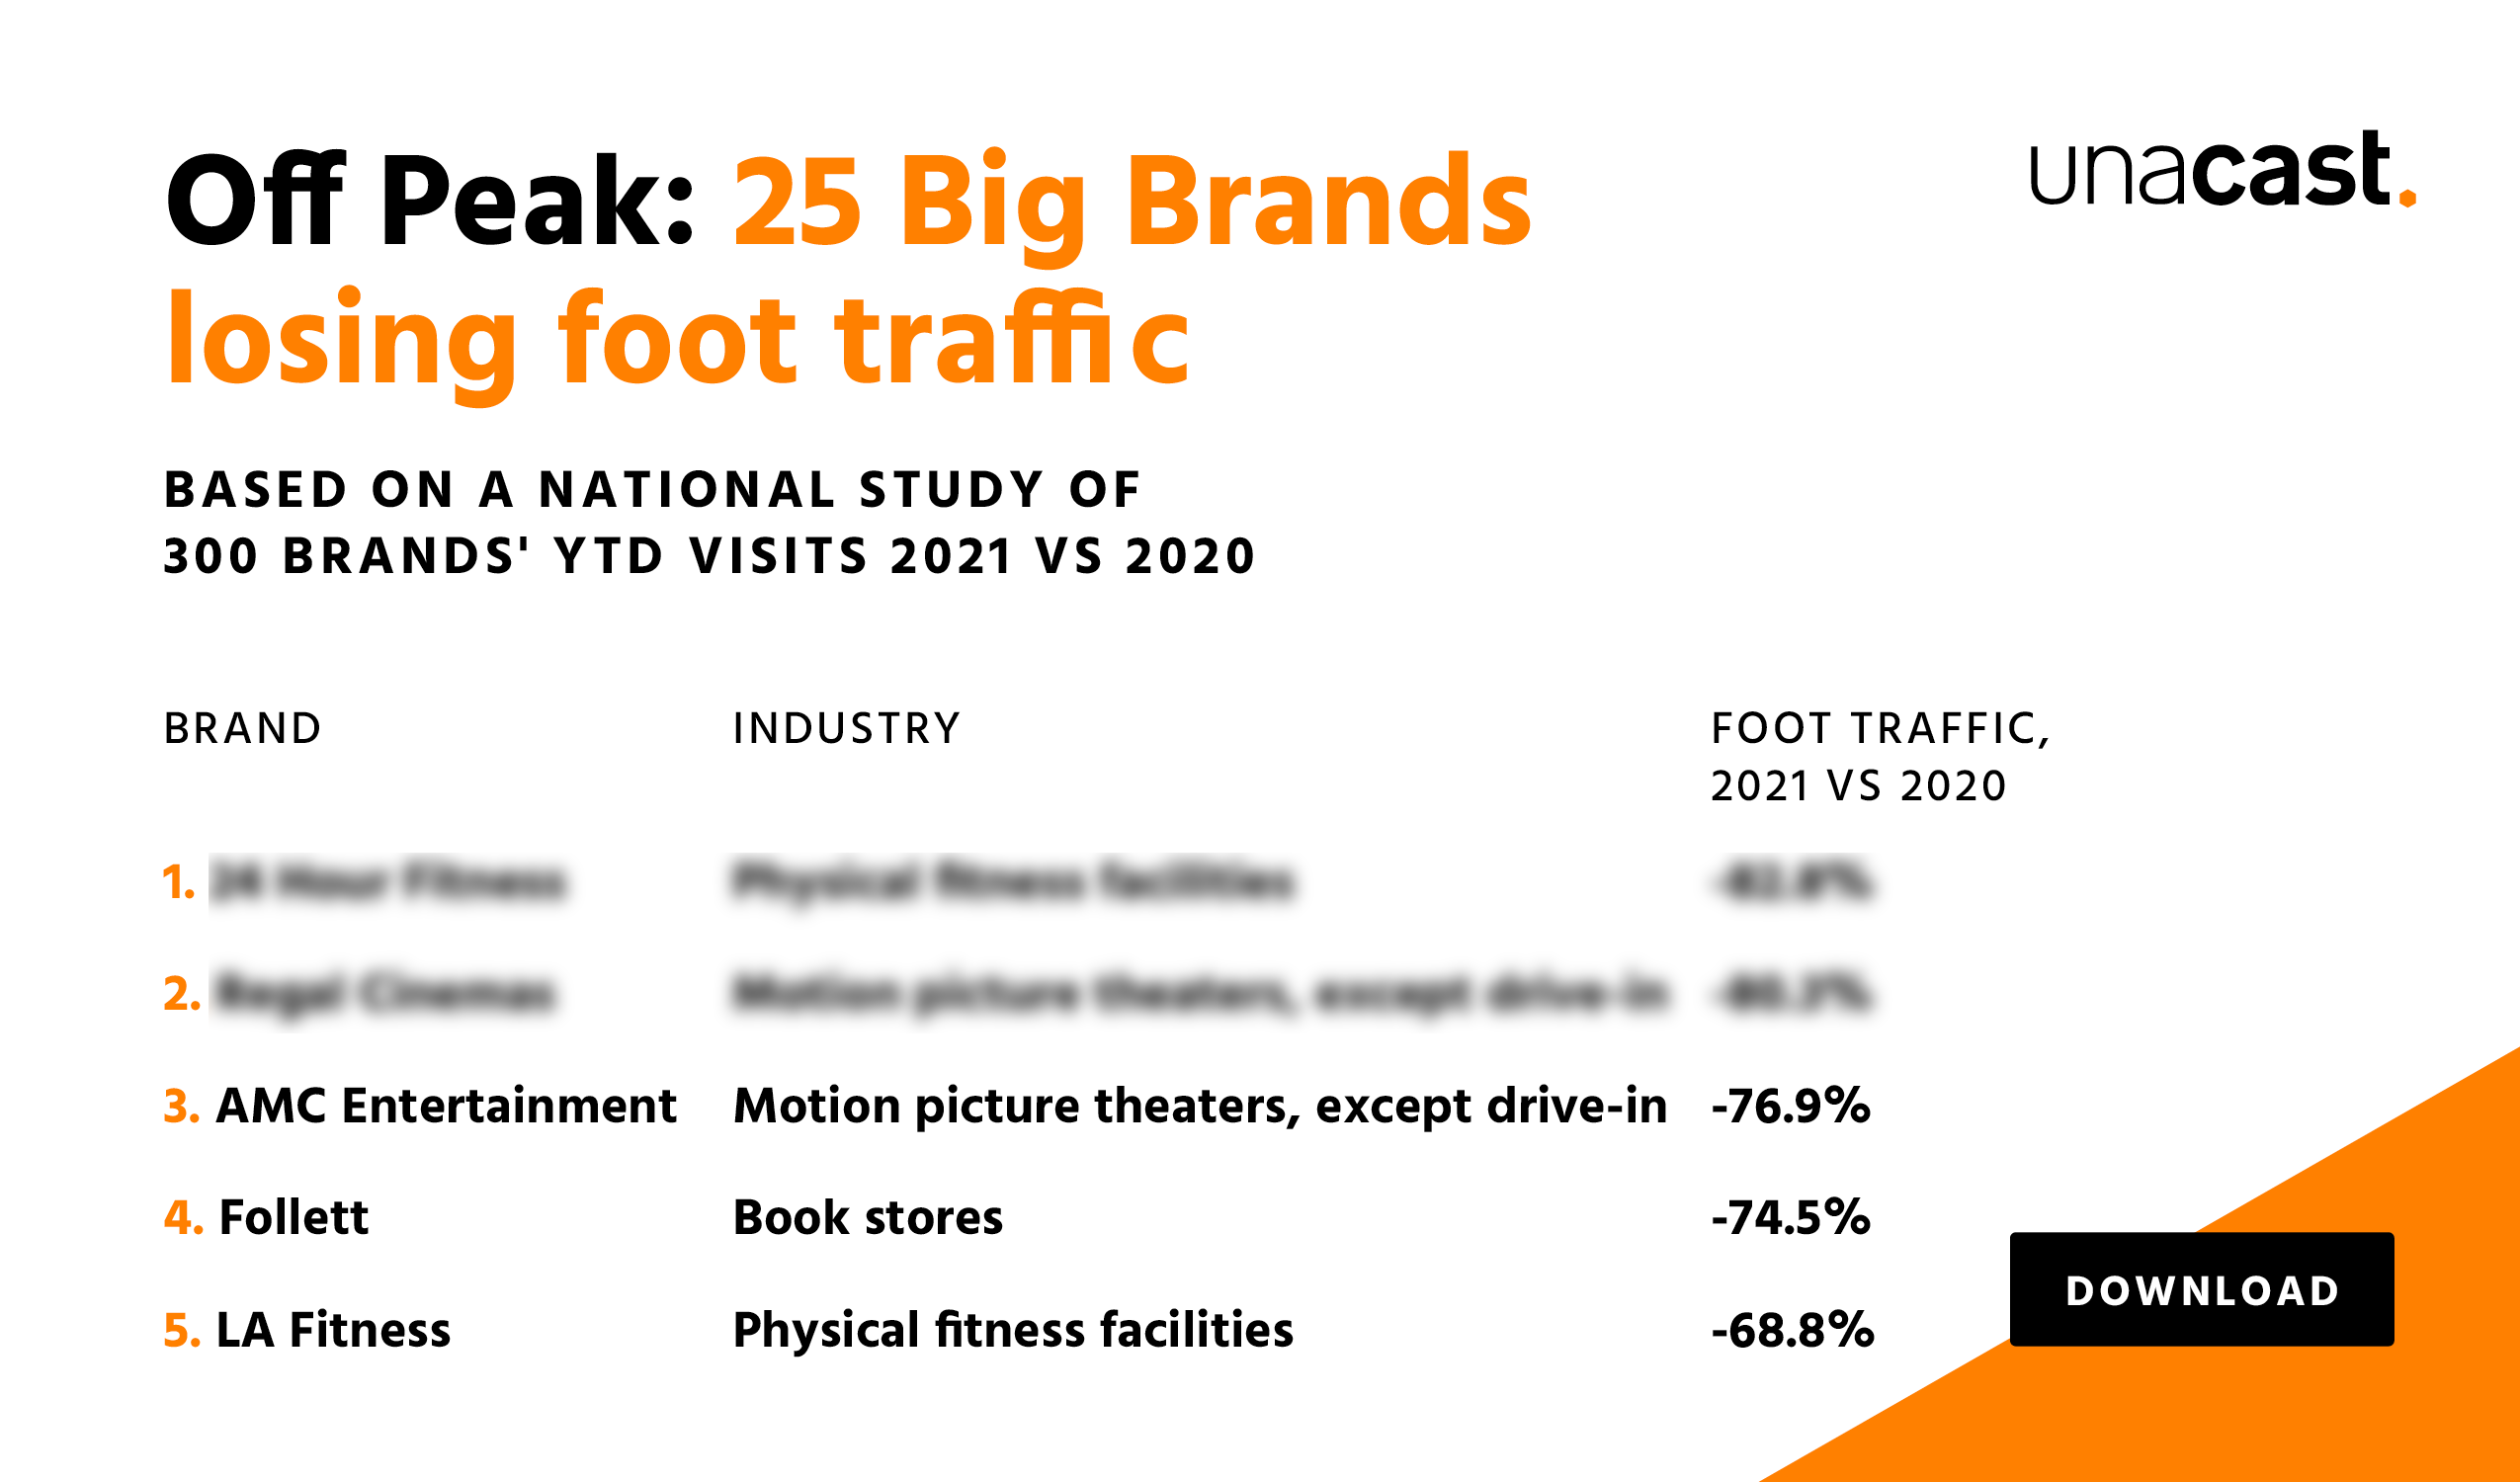 25 Big Brands losing foot traffic